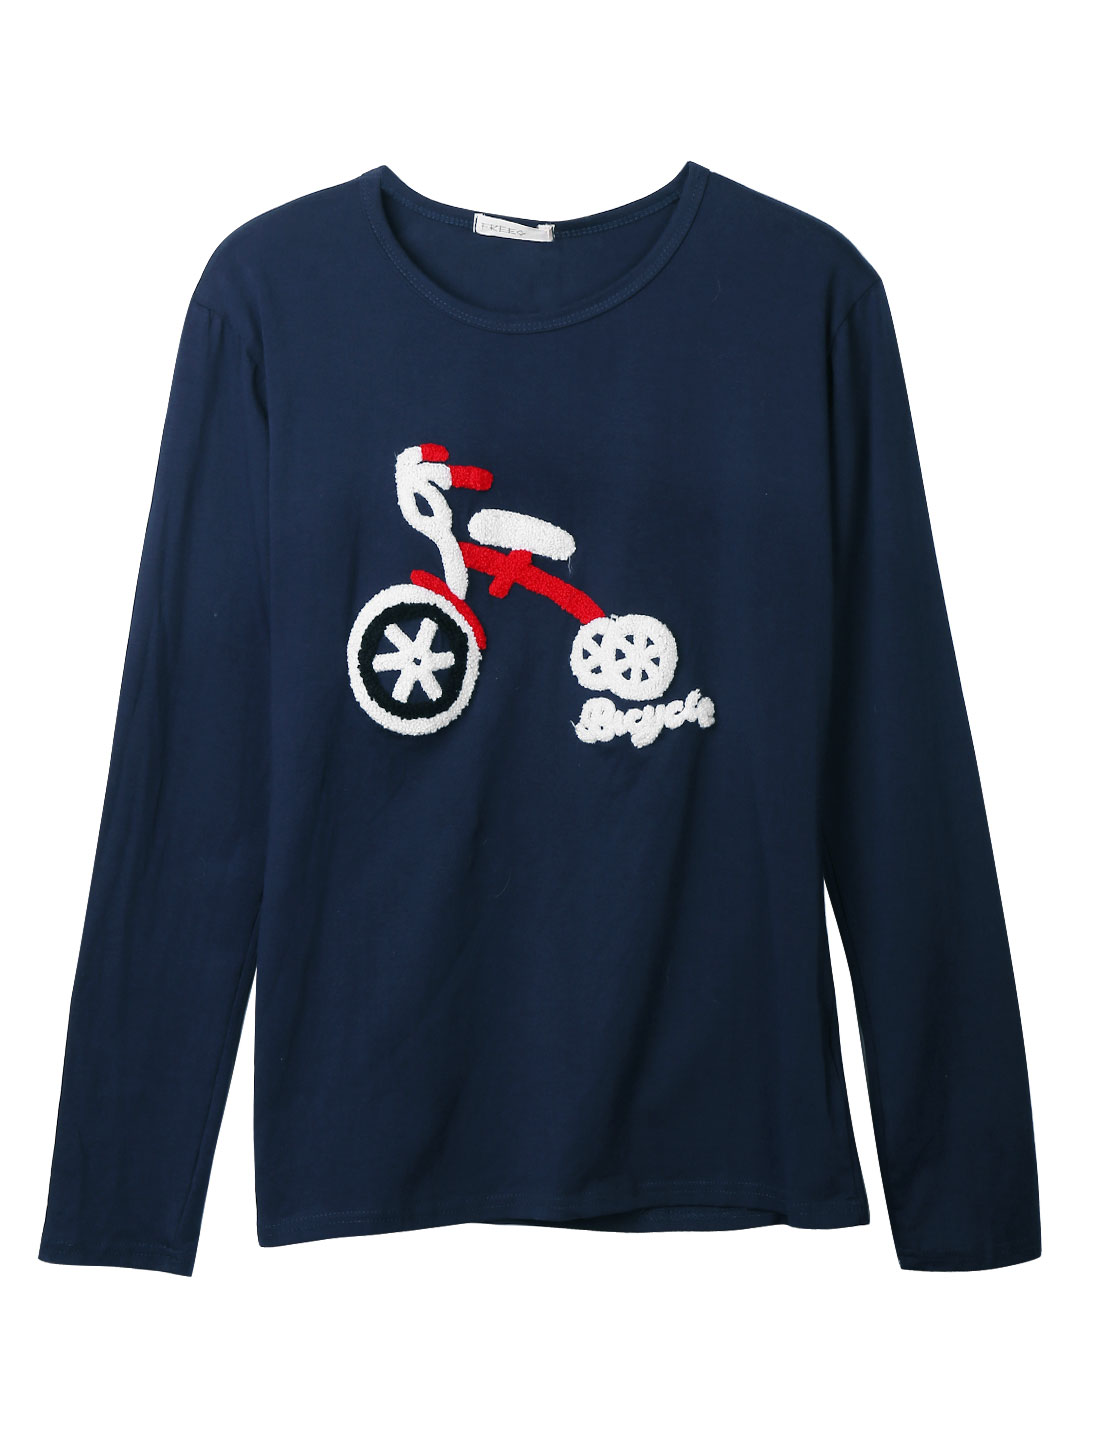 Round Neck Bicycle Embroidery Navy Bkue Casual Shirt for Man M